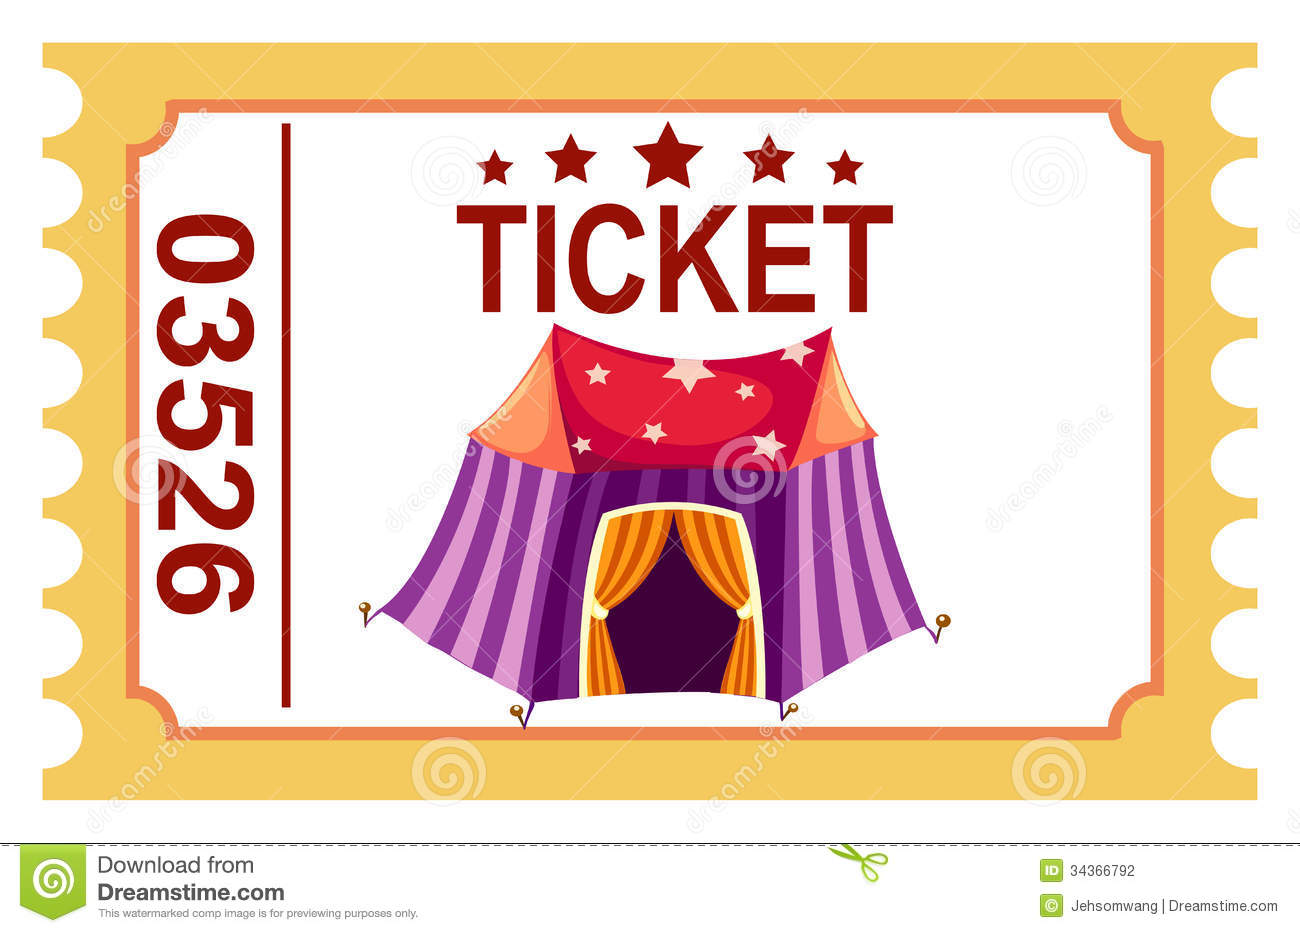 circus ticket clipart clipart suggest Blank Ticket Stub Clip Art Blank Ticket Stub Clip Art